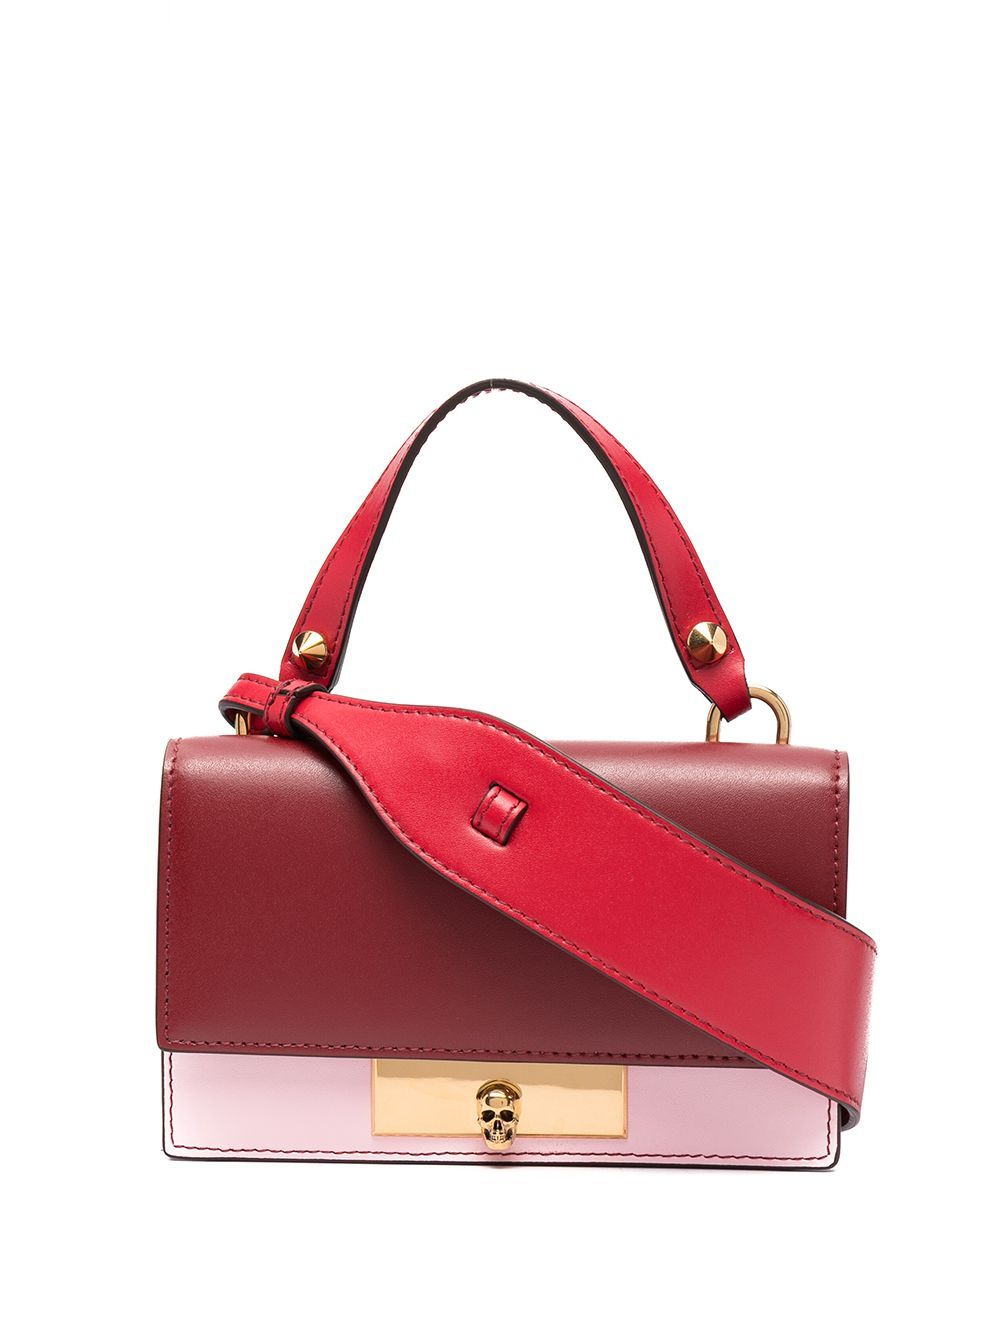 Alexander Mcqueen ALEXANDER MCQUEEN WOMEN'S 6282591LYAZ8495 RED LEATHER HANDBAG